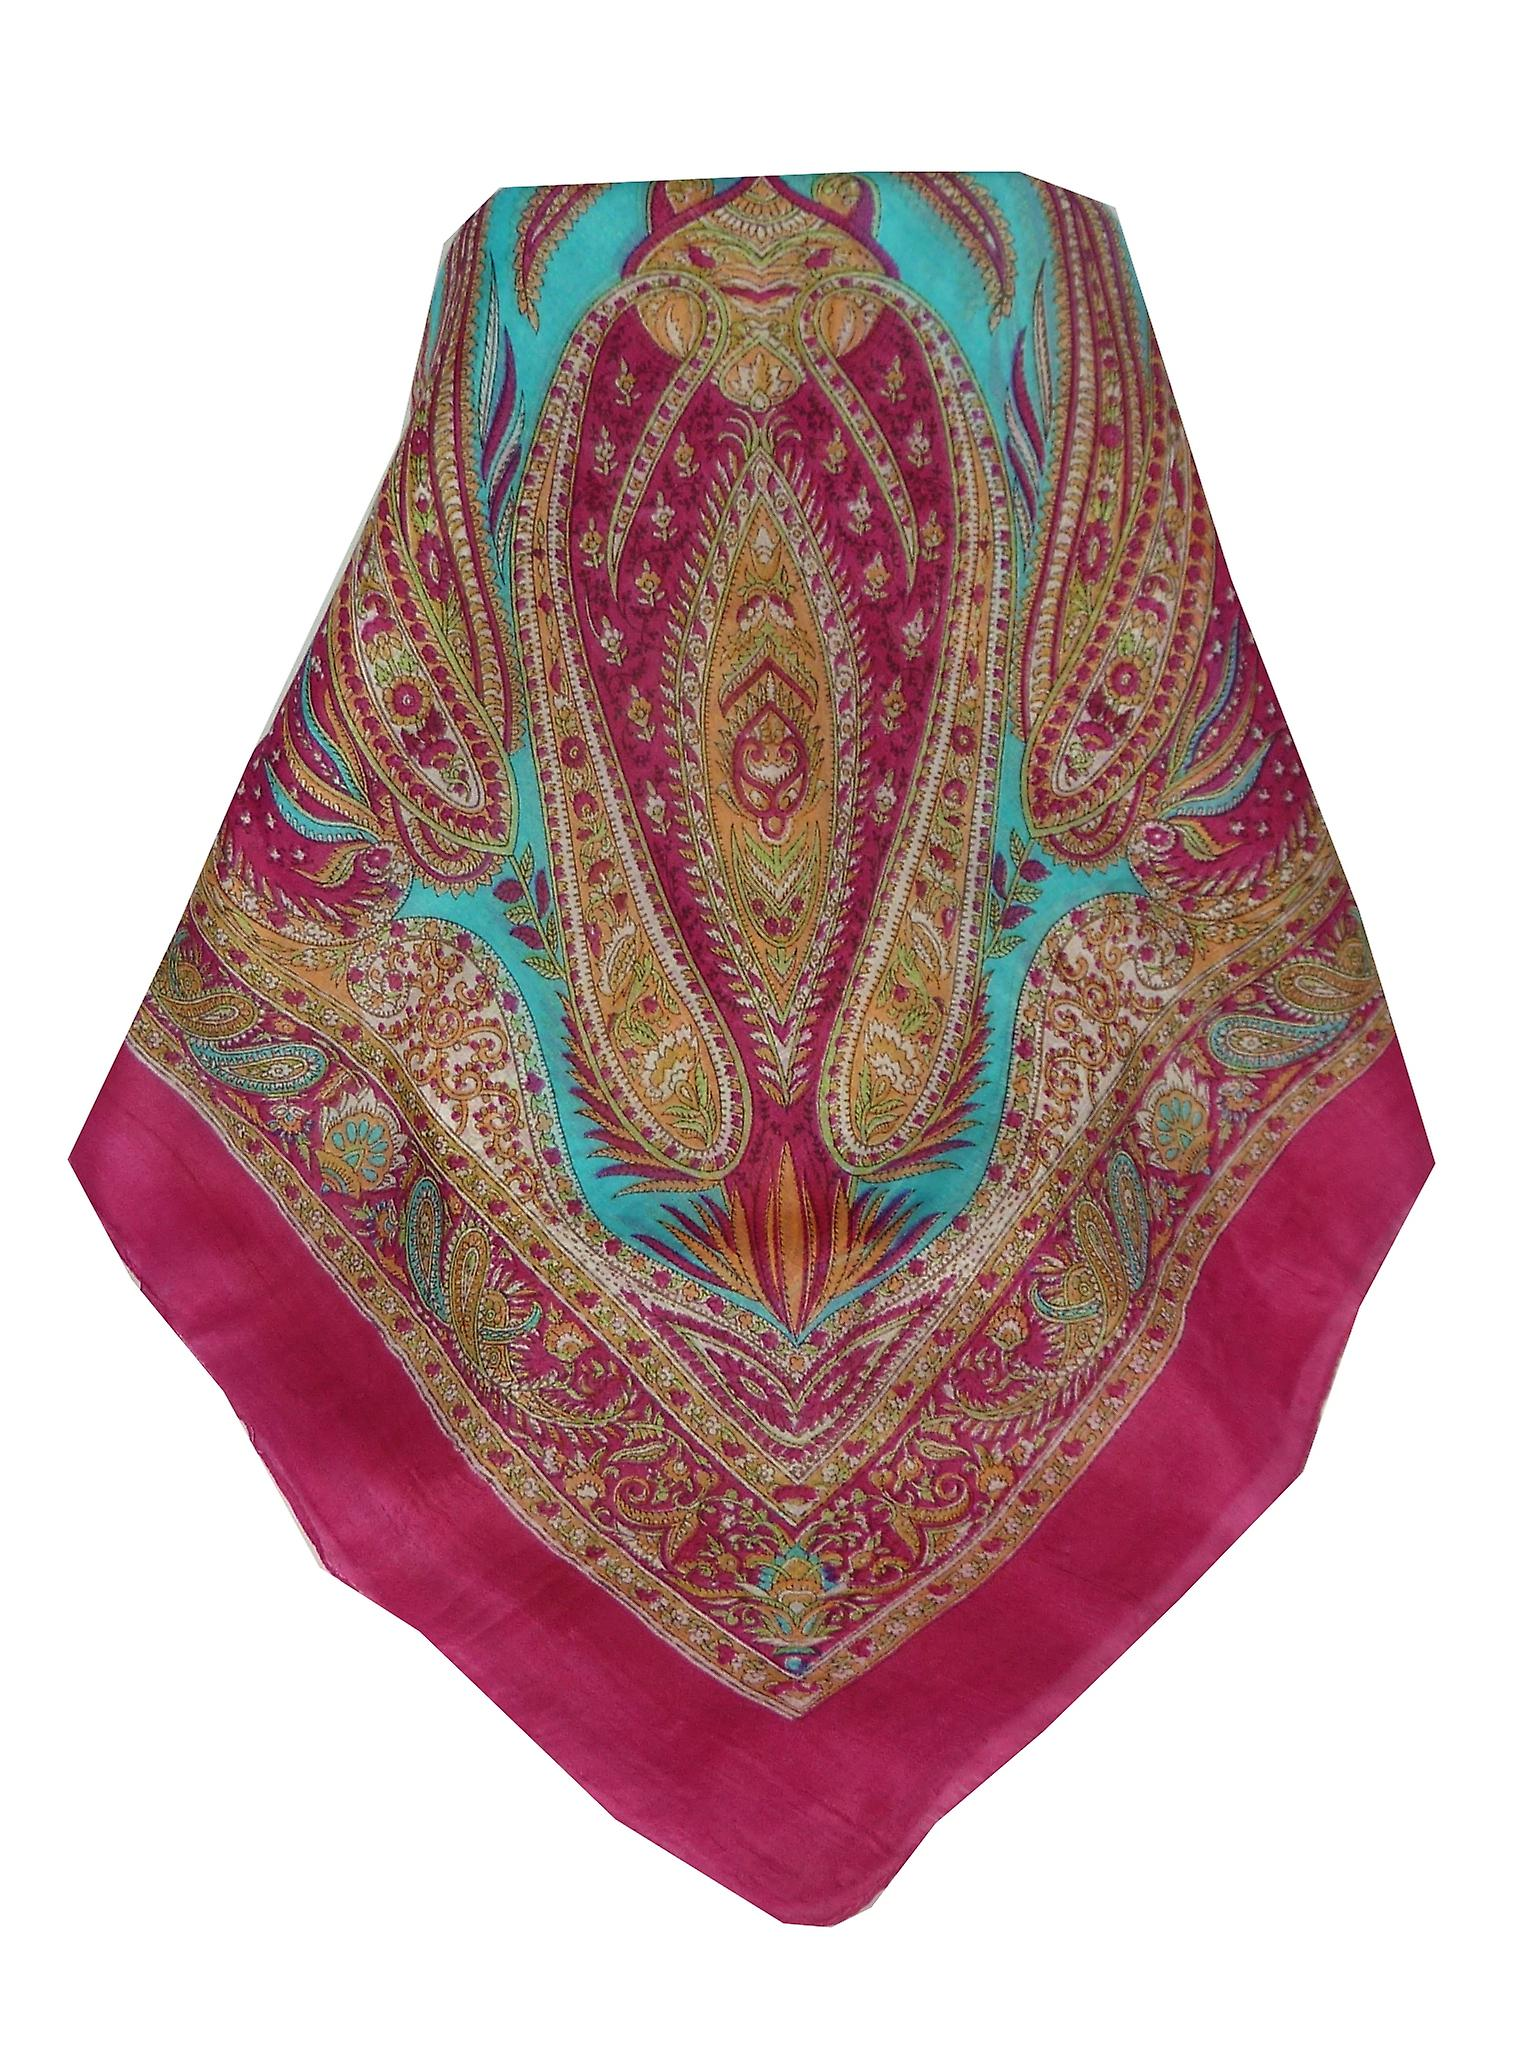 Mulberry Silk Classic Square Scarf Harisa Pink by Pashmina & Silk